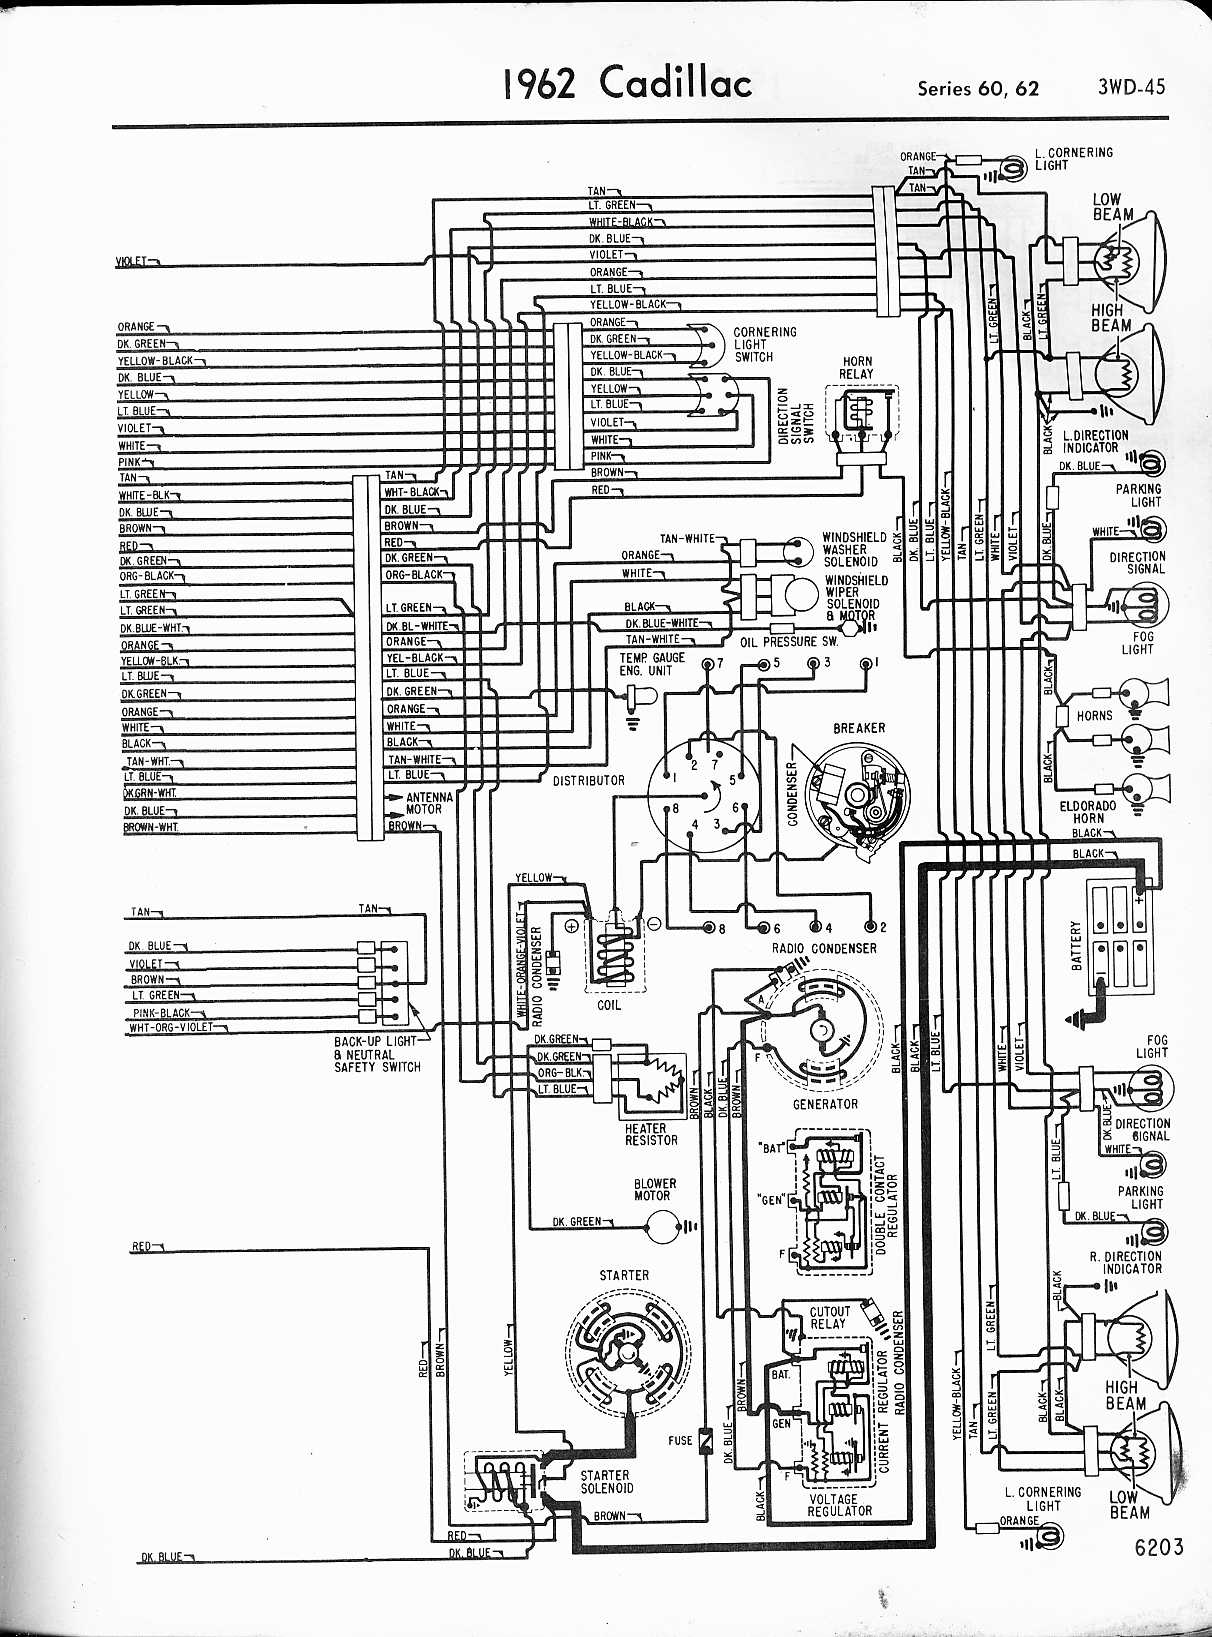 cadillac 1963 windows wiring diagram all about diagrams cadillac wiring diagrams: 1957-1965 ford f150 power windows wiring diagram #15